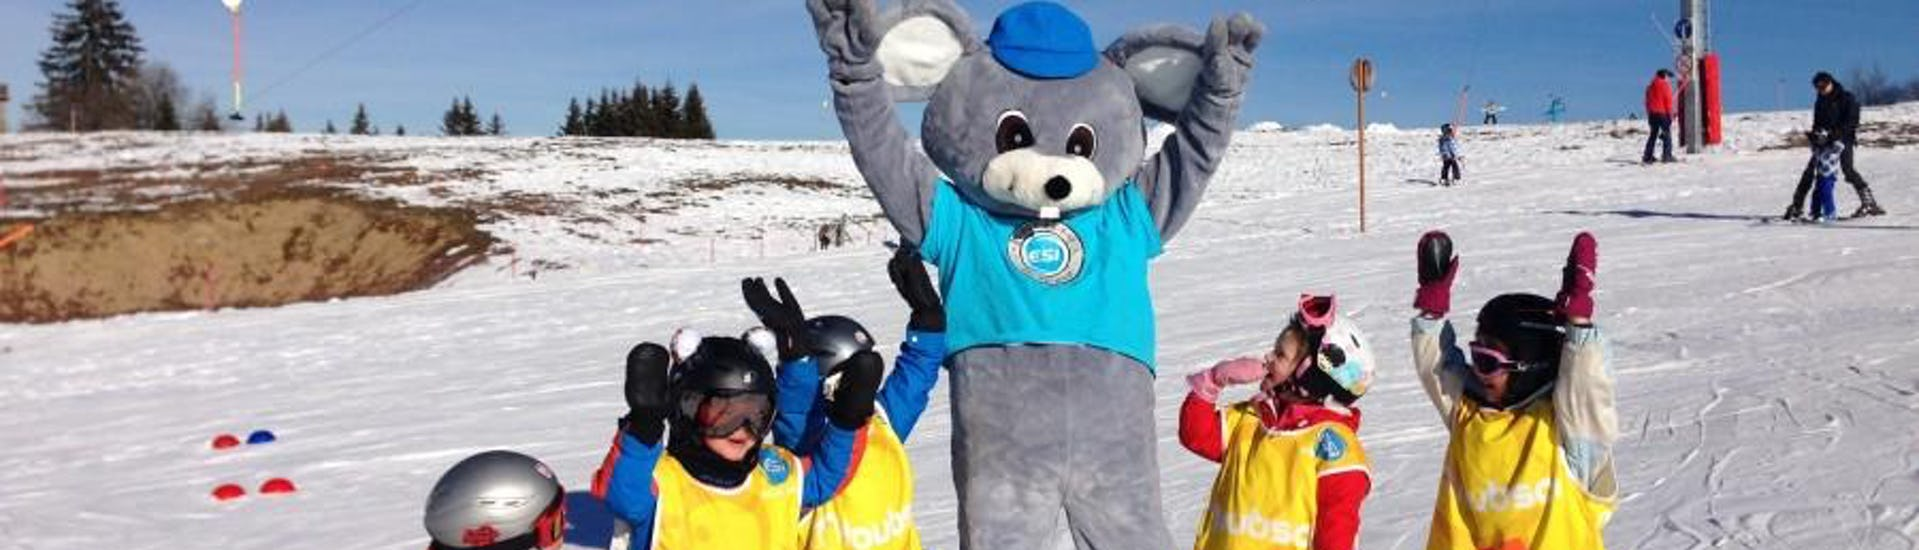 Ski Lessons for Kids (4-6 years) - February Holidays